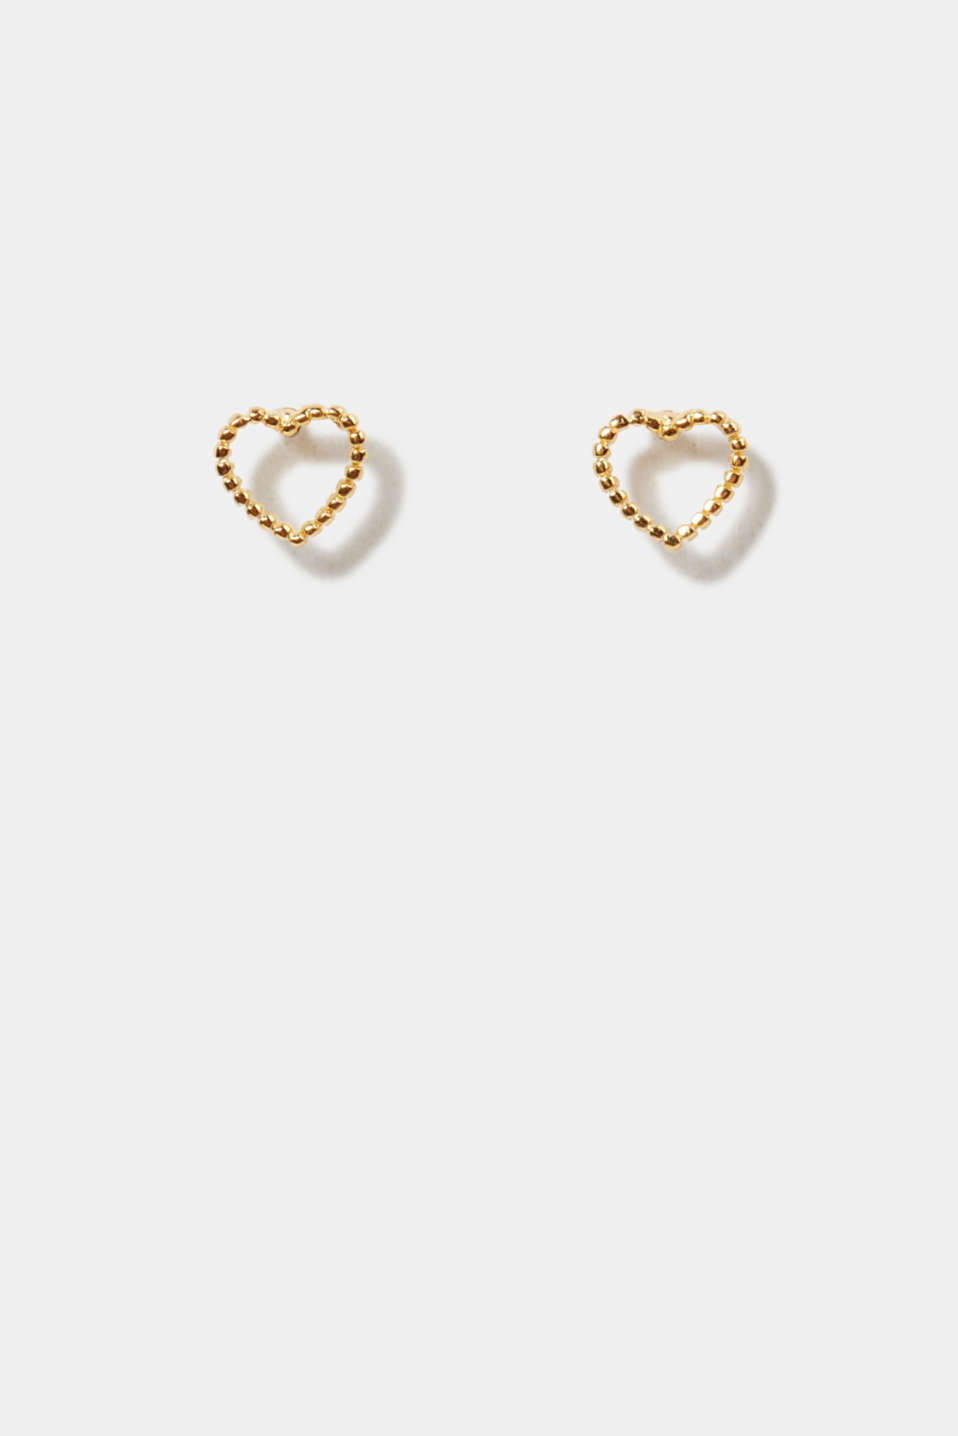 Esprit - Delicate heart-shaped stud earrings, sterling silver